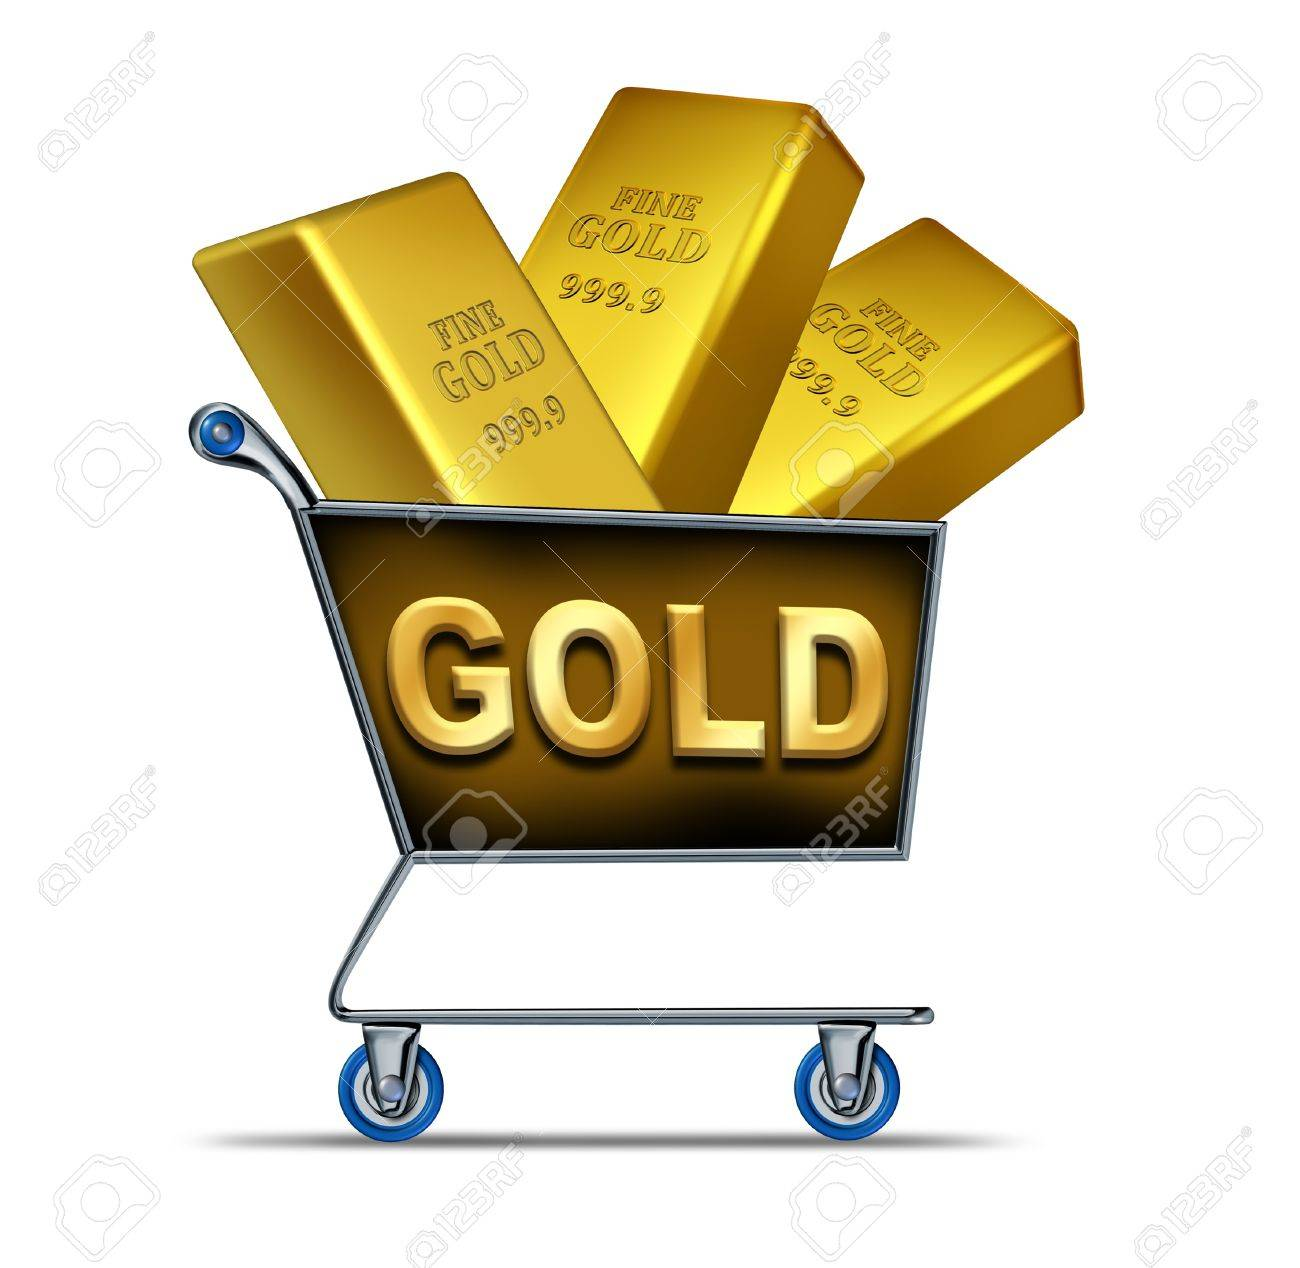 Shopping for gold symbol represented by a shop cart with golden shopping for gold symbol represented by a shop cart with golden bars inside representing the buying biocorpaavc Image collections